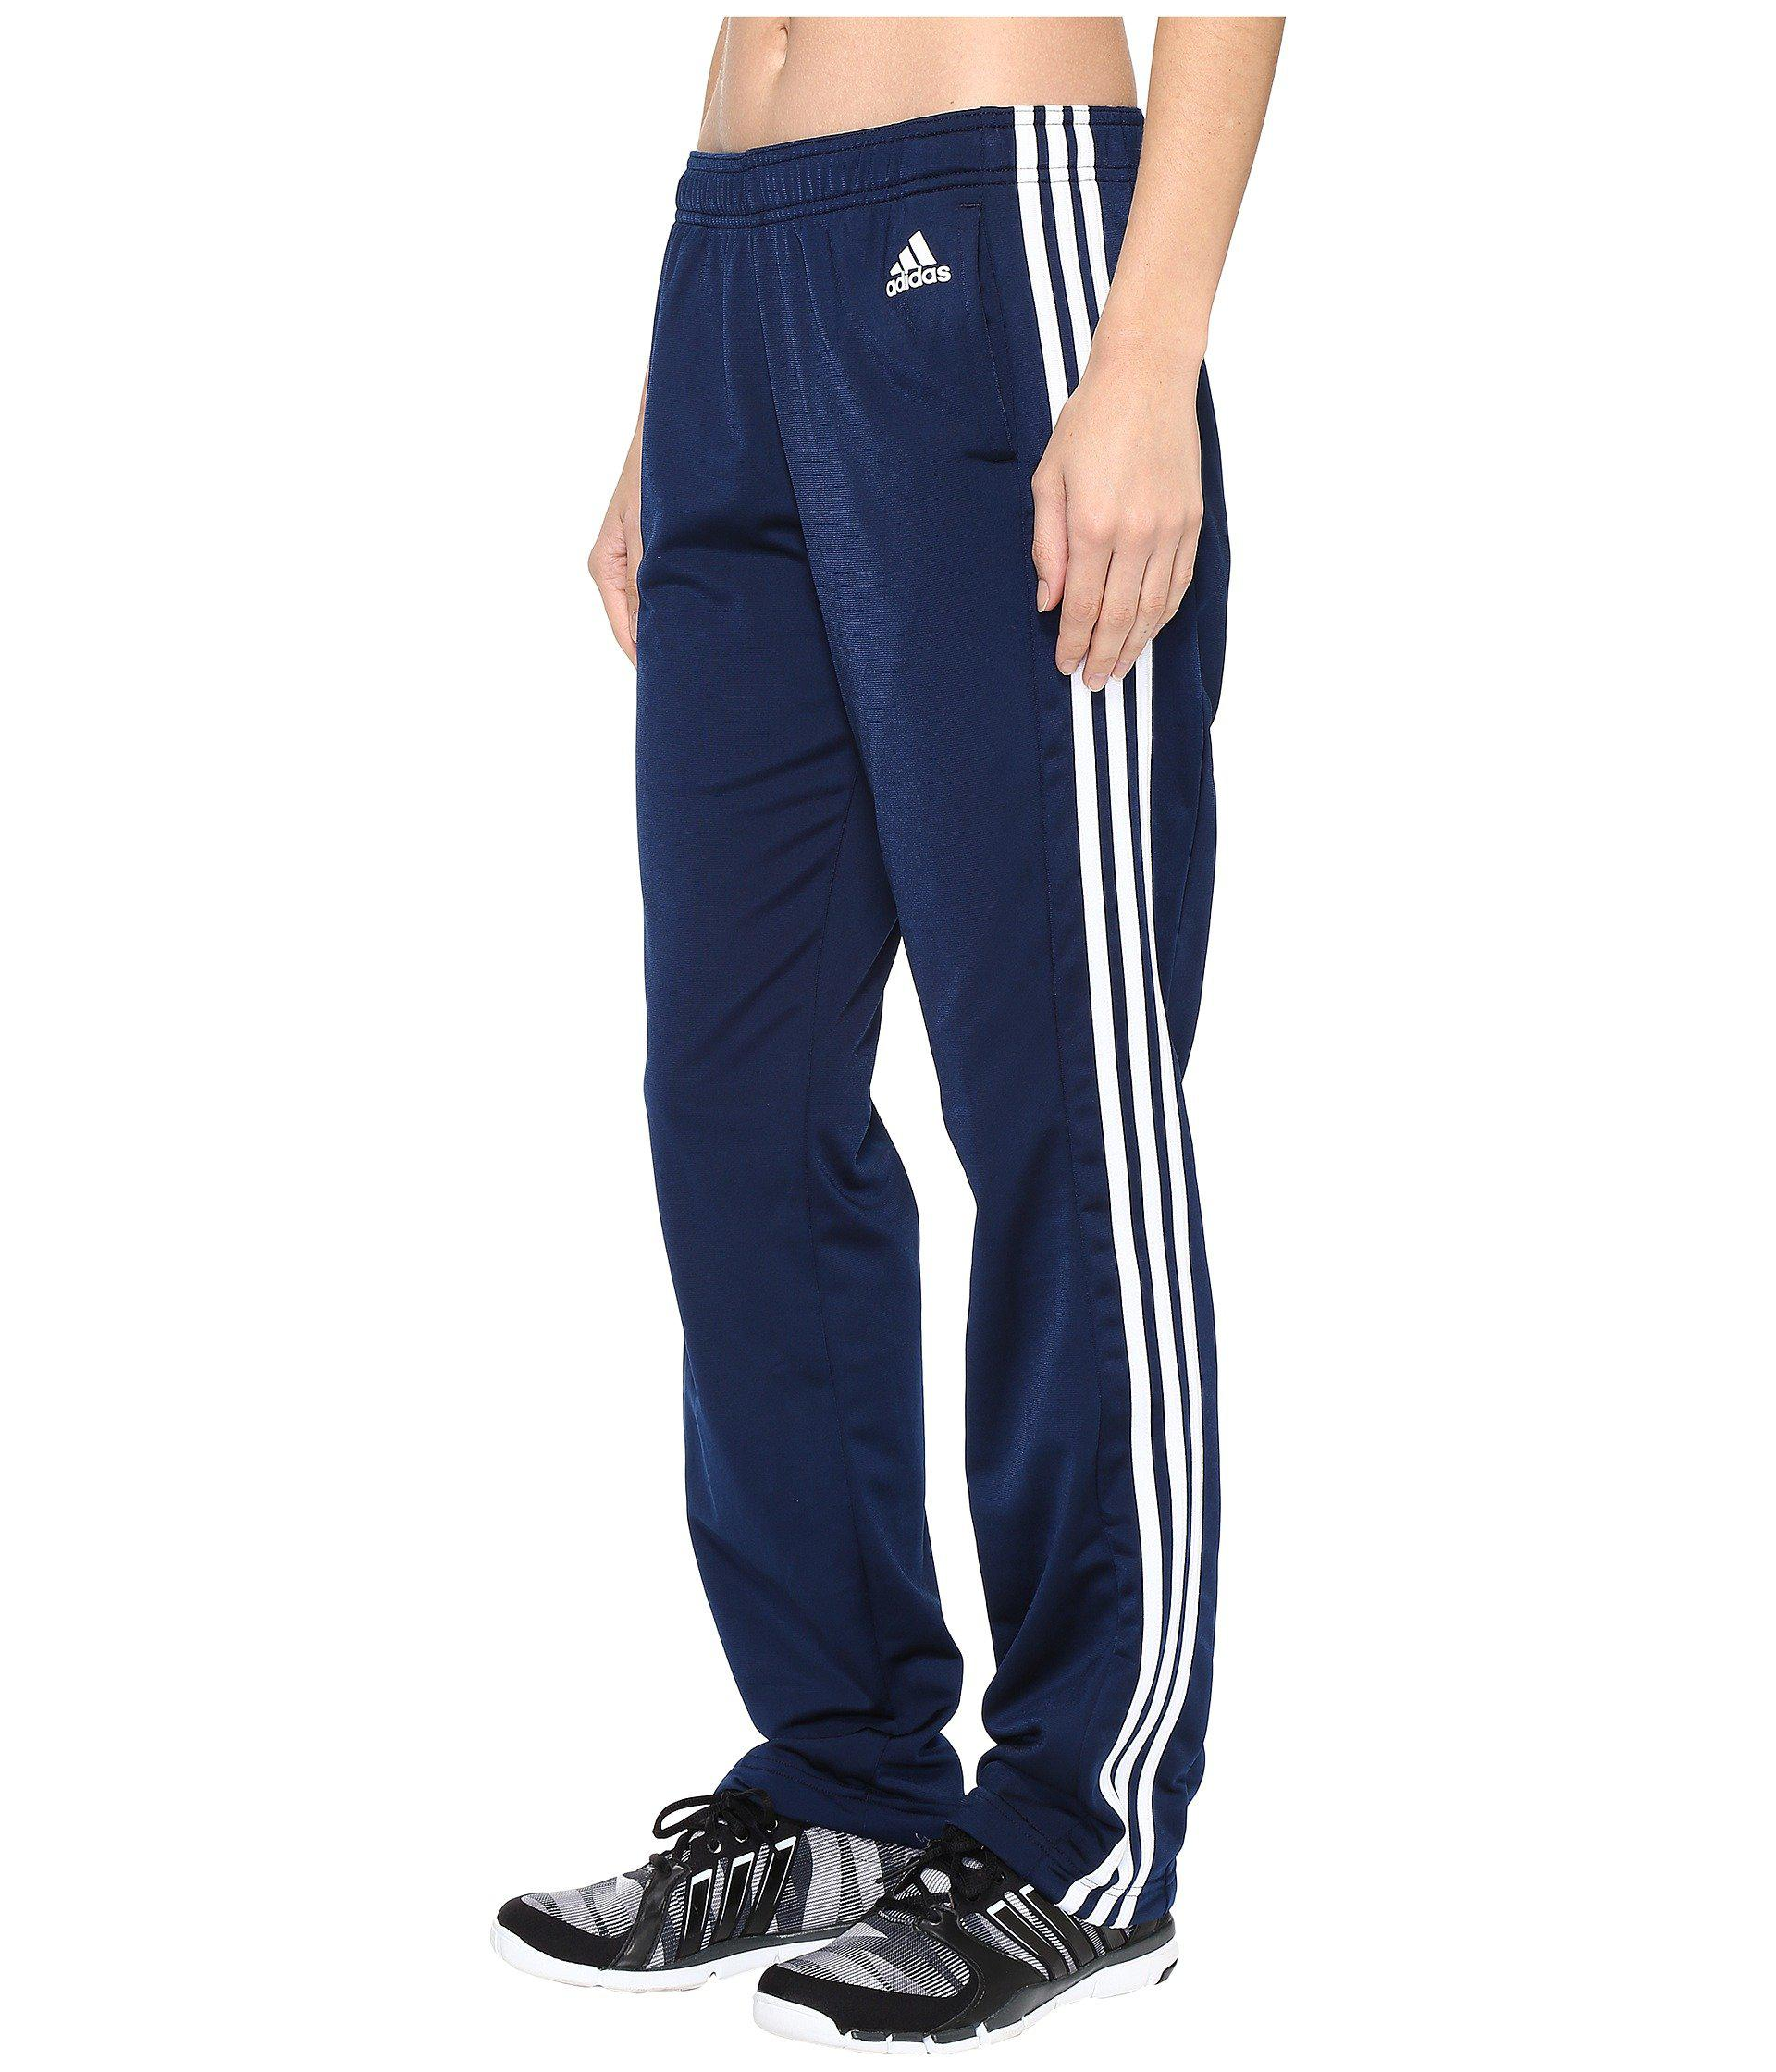 108175d427a0 adidas Designed-2-move Straight Pants in Blue - Lyst